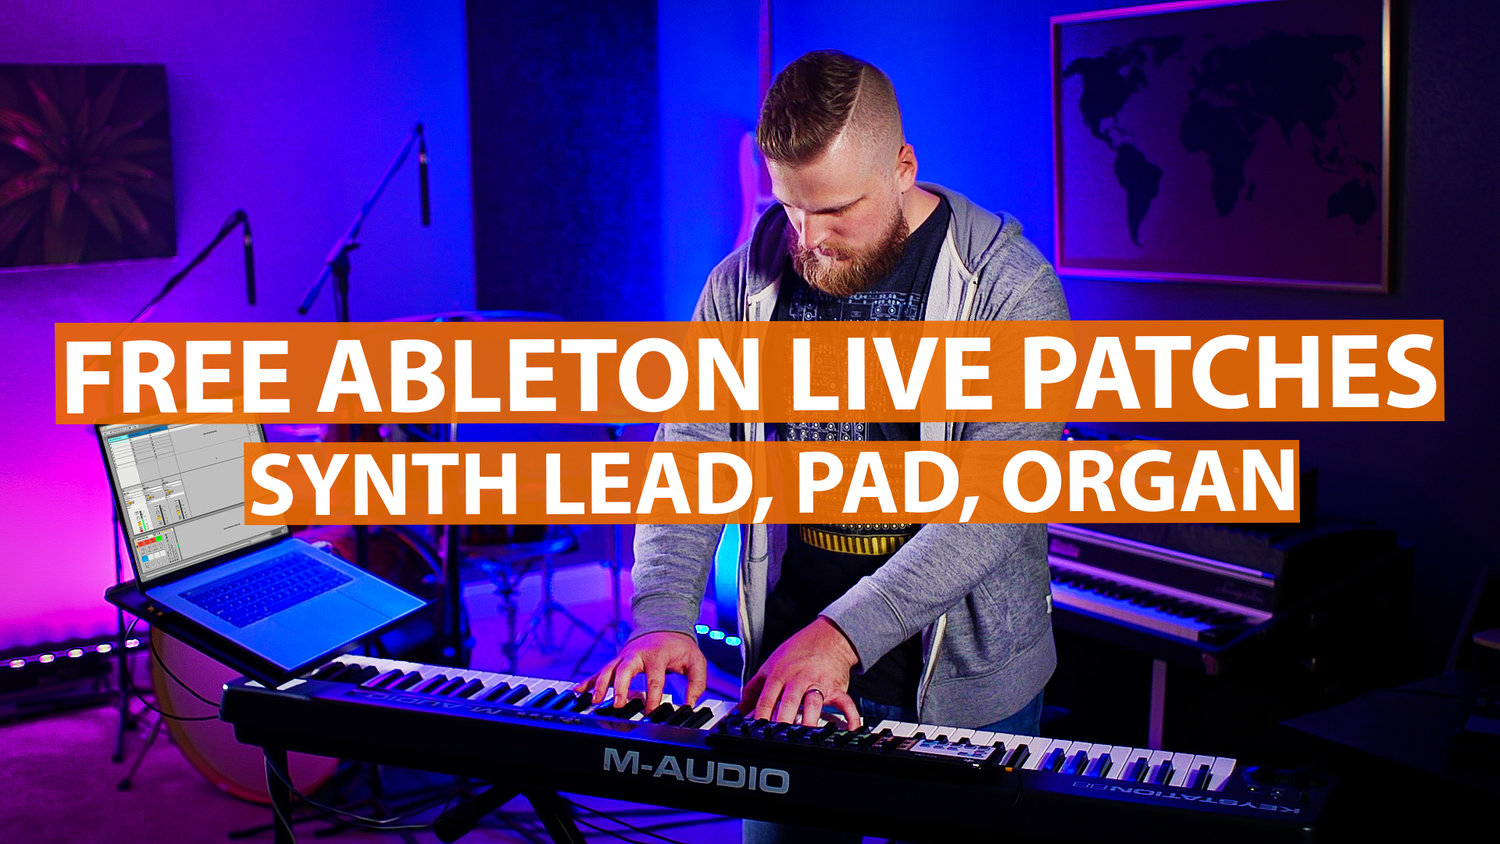 Free Ableton Live Patches Demo from Sunday Sounds — MainStage